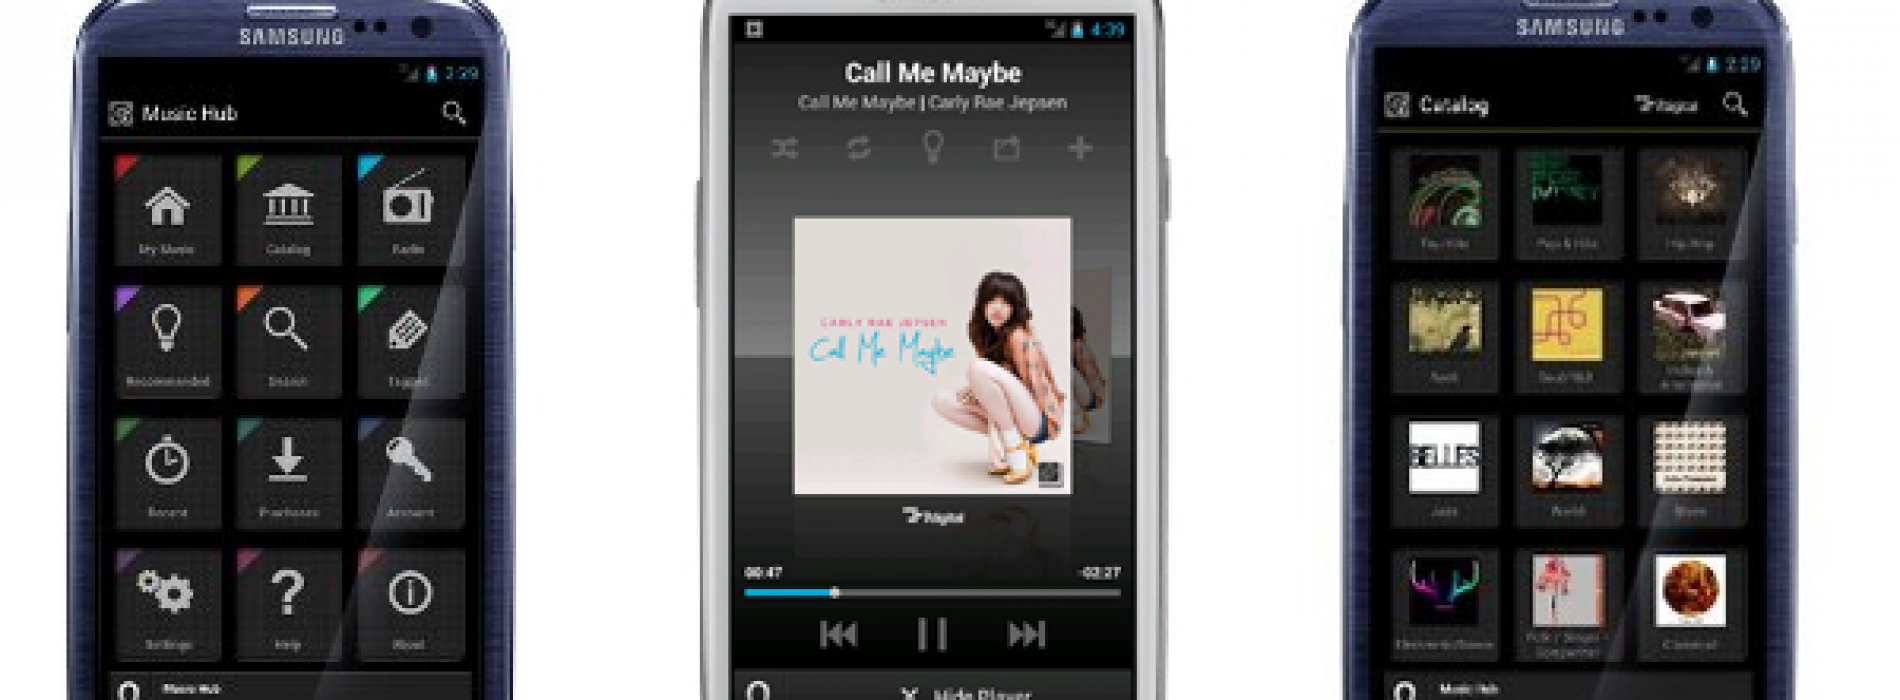 Samsung brings Music Hub to U.S. with Galaxy S III